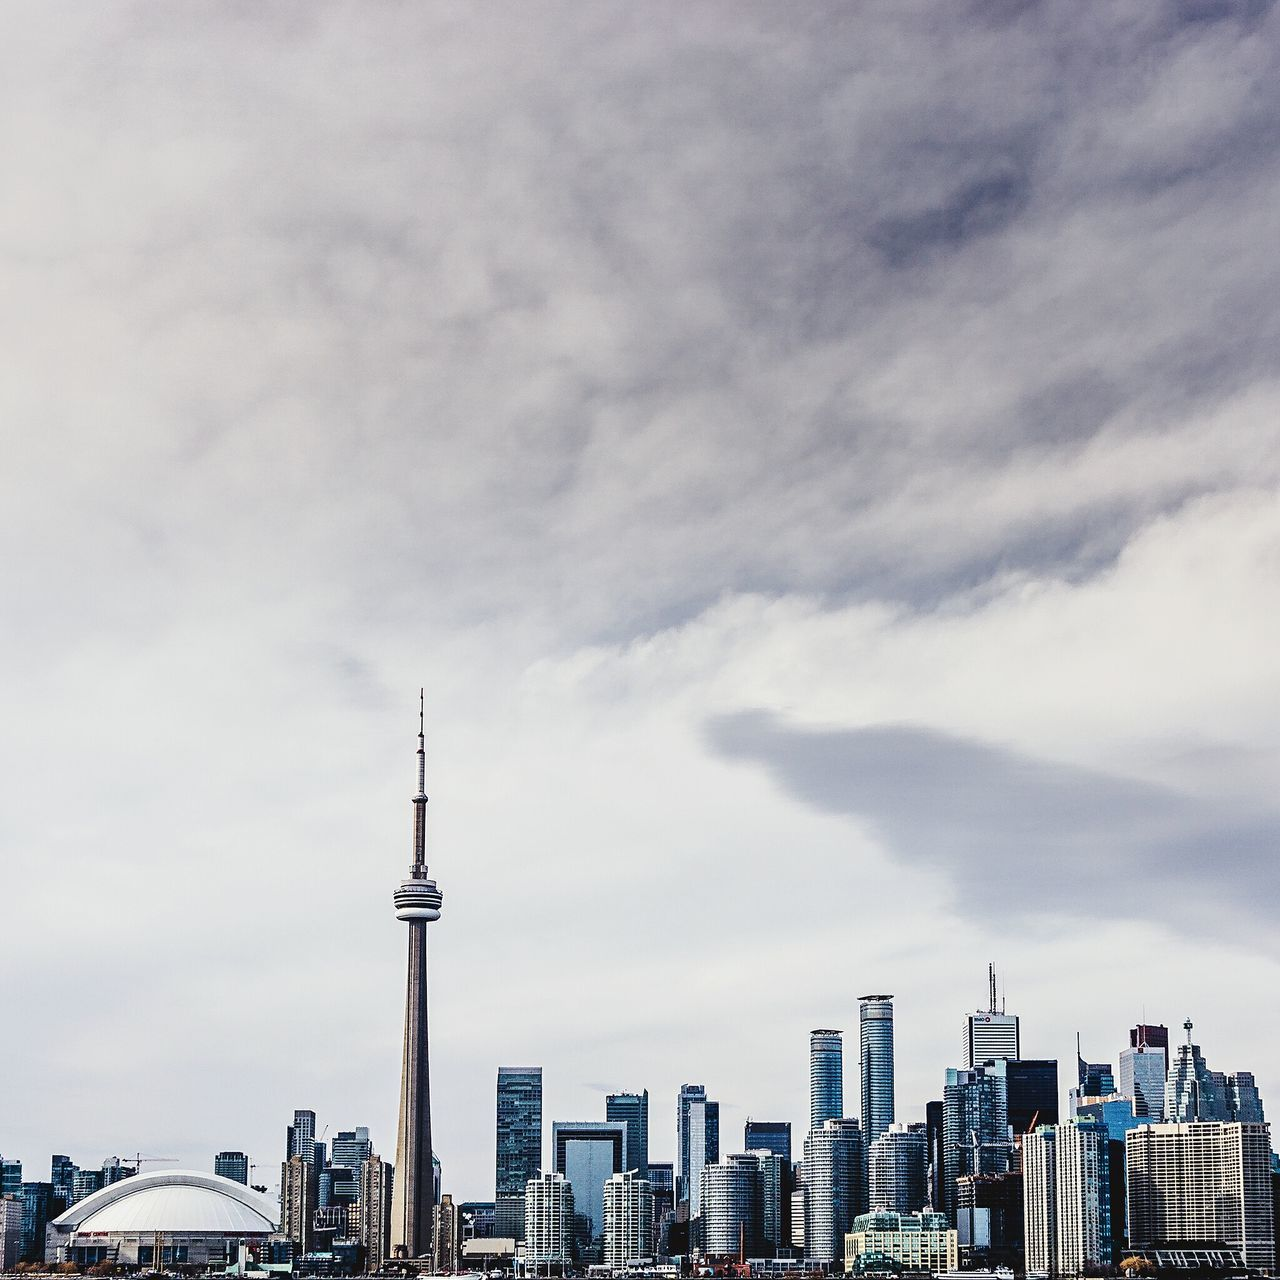 toronto skyline as seen from olympic island Toronto Cityscapes City The Architect - 2015 EyeEm Awards Canada Urban Urban Geometry Street Photography Streetphotography Skyline